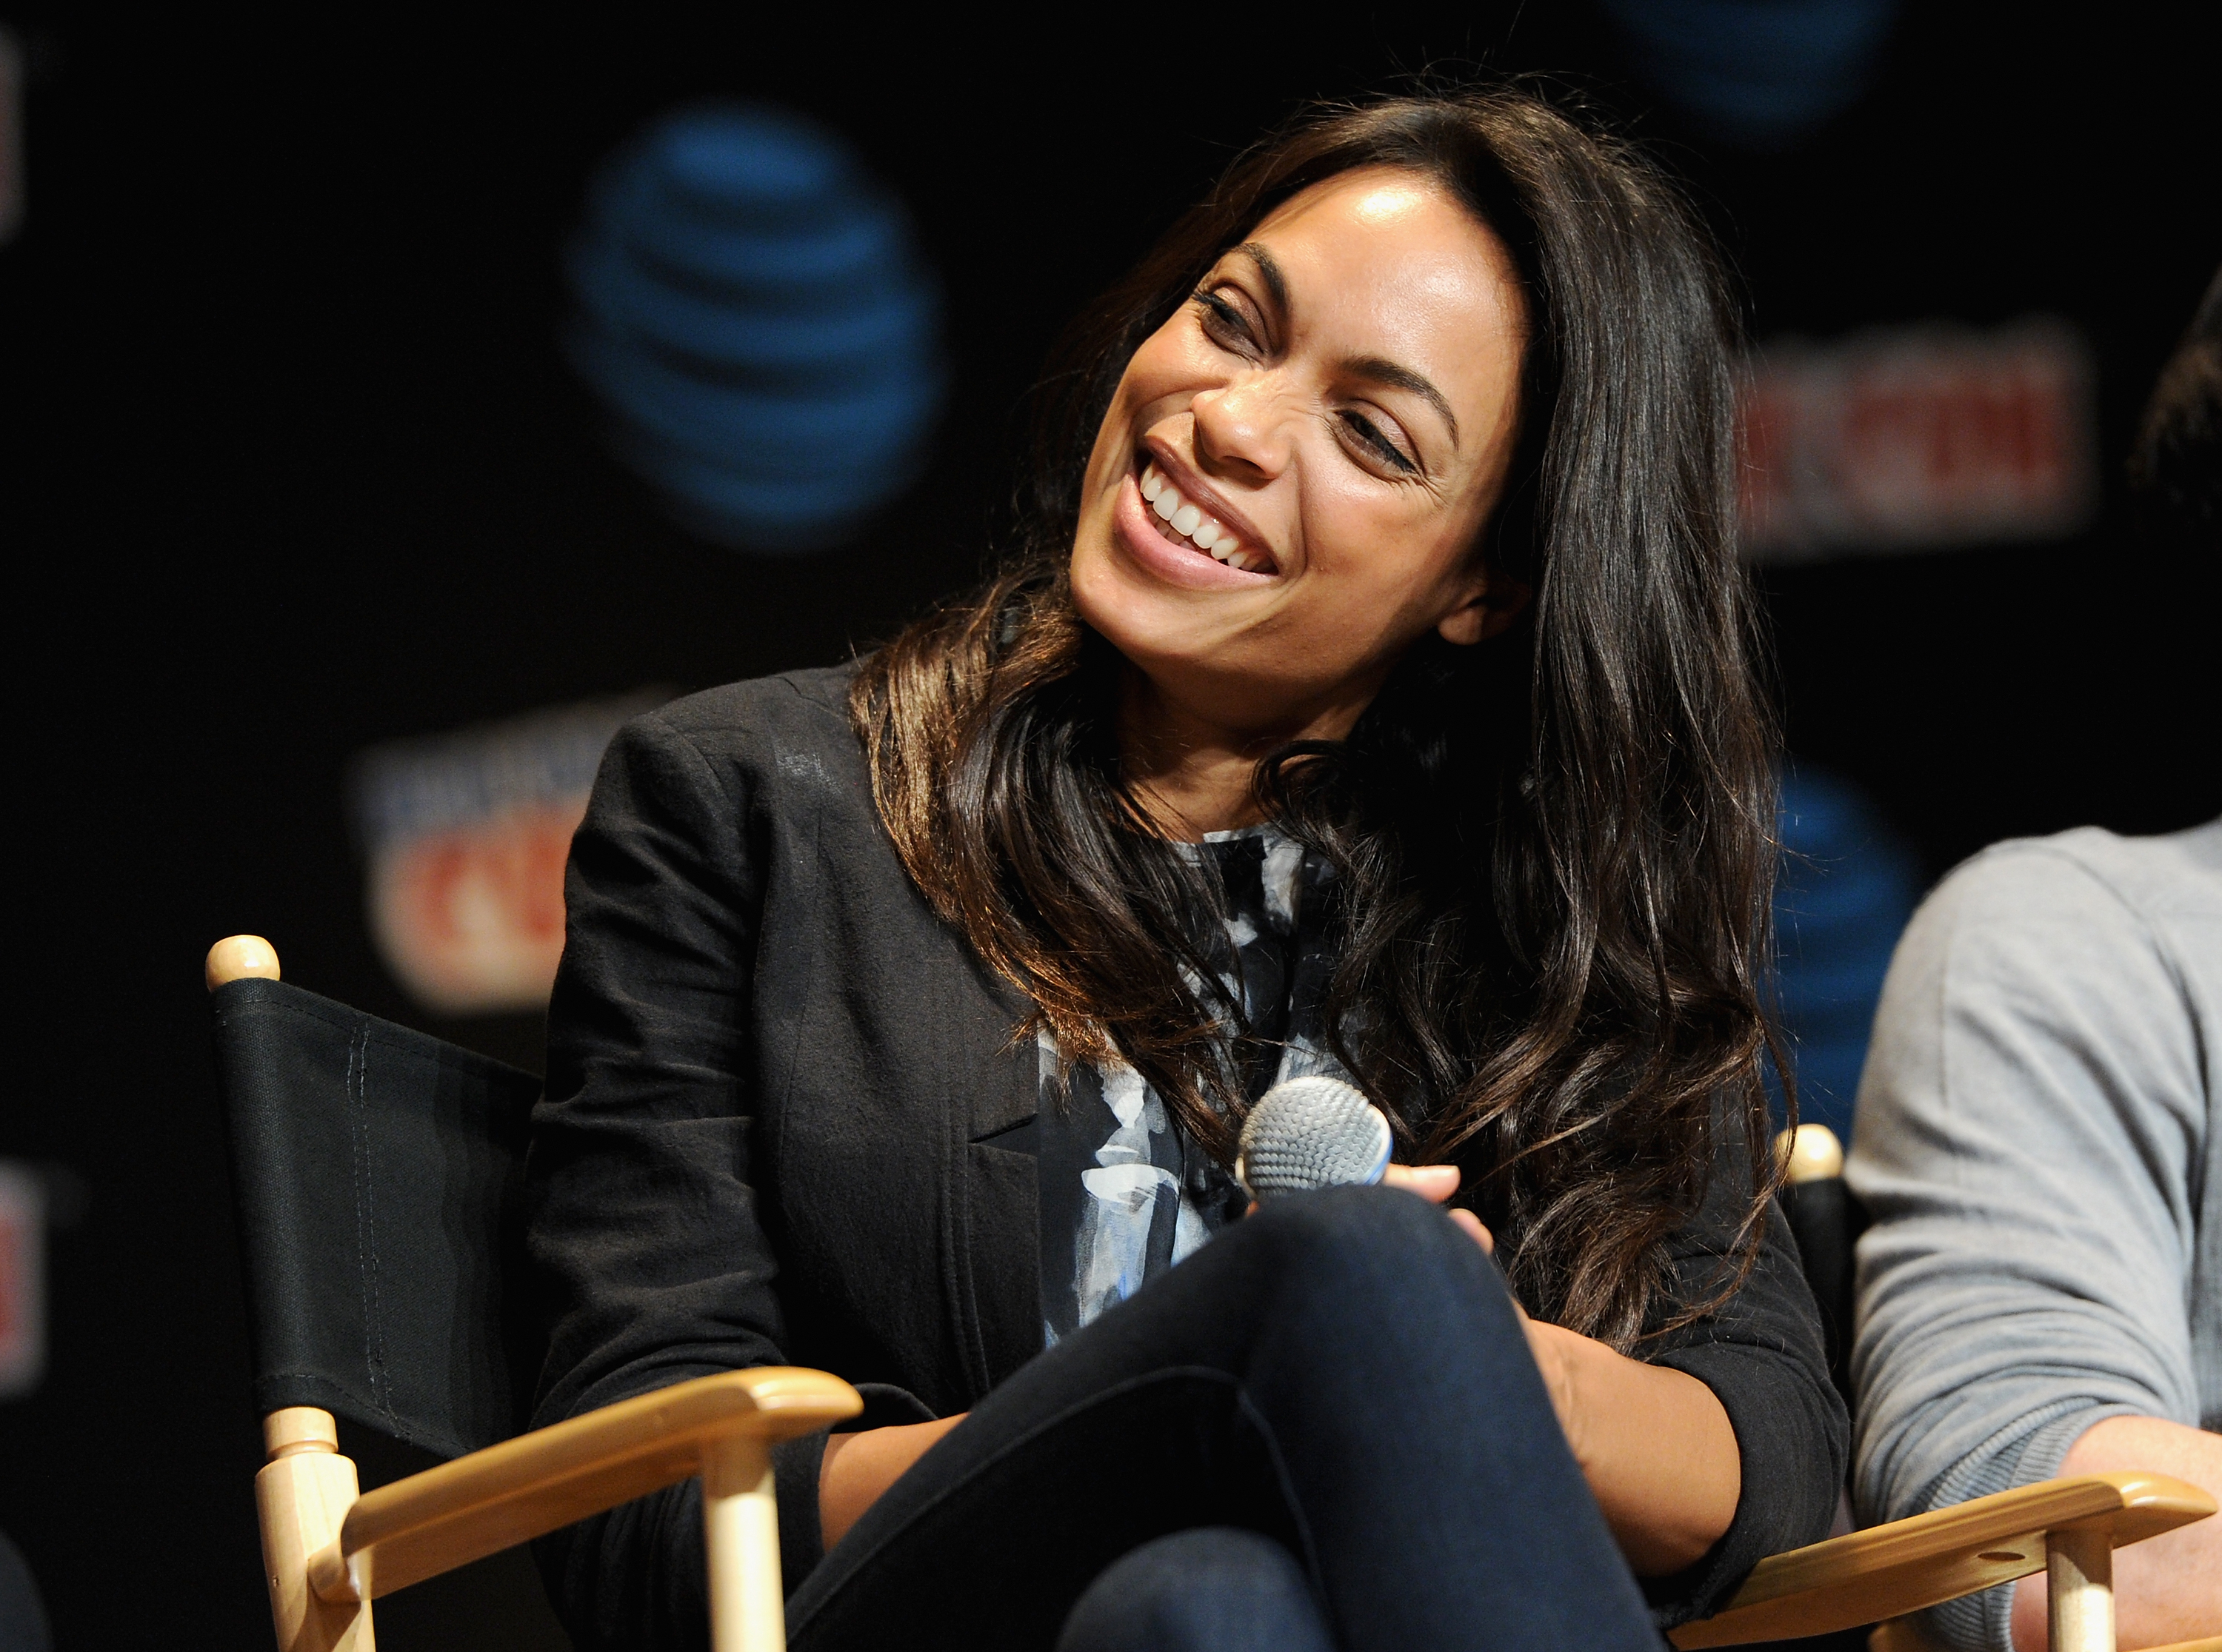 Rosario Dawson Marvel's Iron fist TV show on Netflix: season 1 (canceled or renewed?)